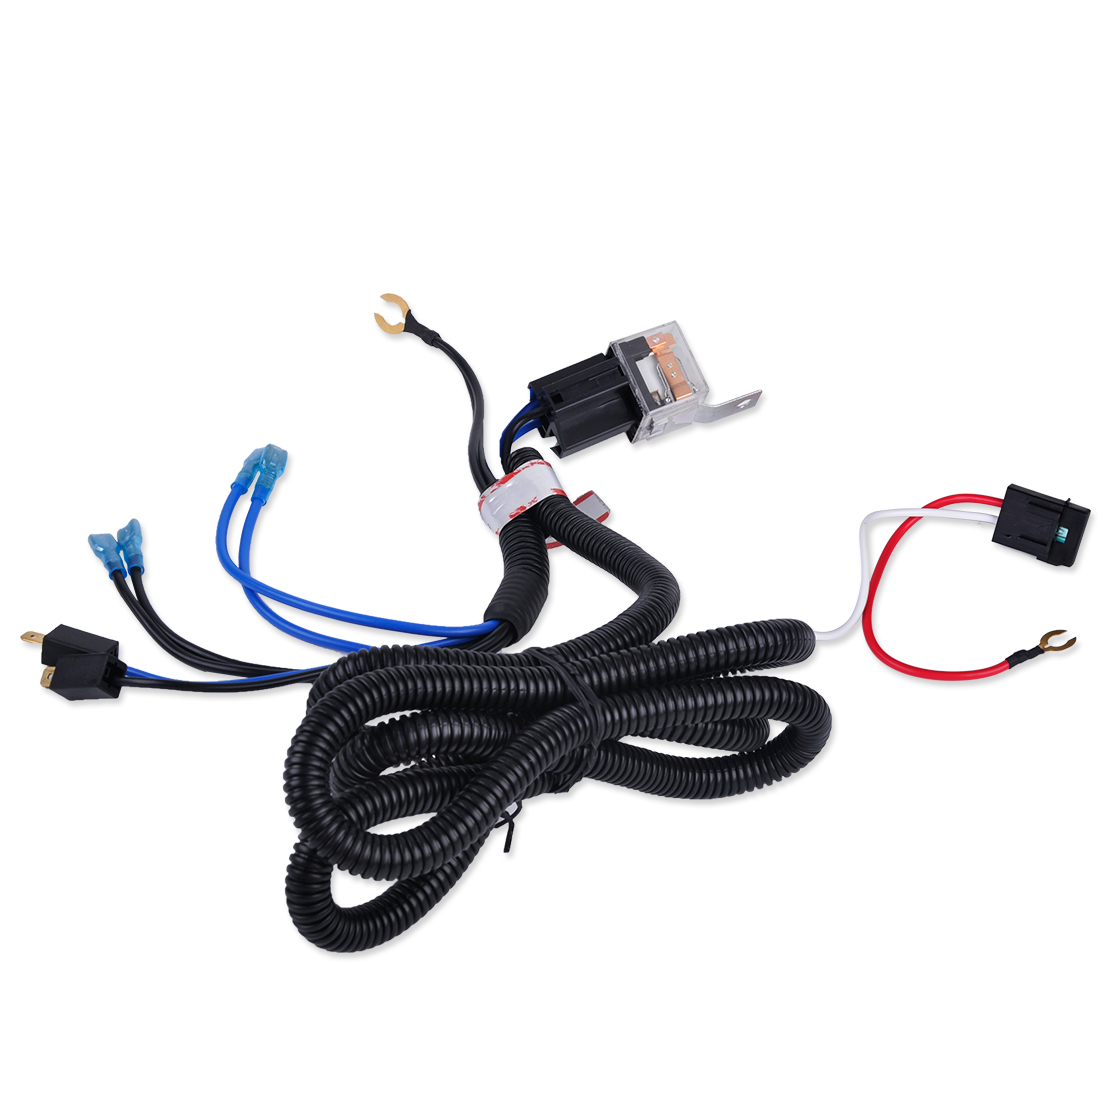 online get cheap vw wiring harness aliexpress com alibaba group Vw Wiring Harness Kits dwcx 12v car auto truck grille mount blast tone horn metal wiring harness relay kit for vw audi mercedes benz mazda honda vw wiring harness kits